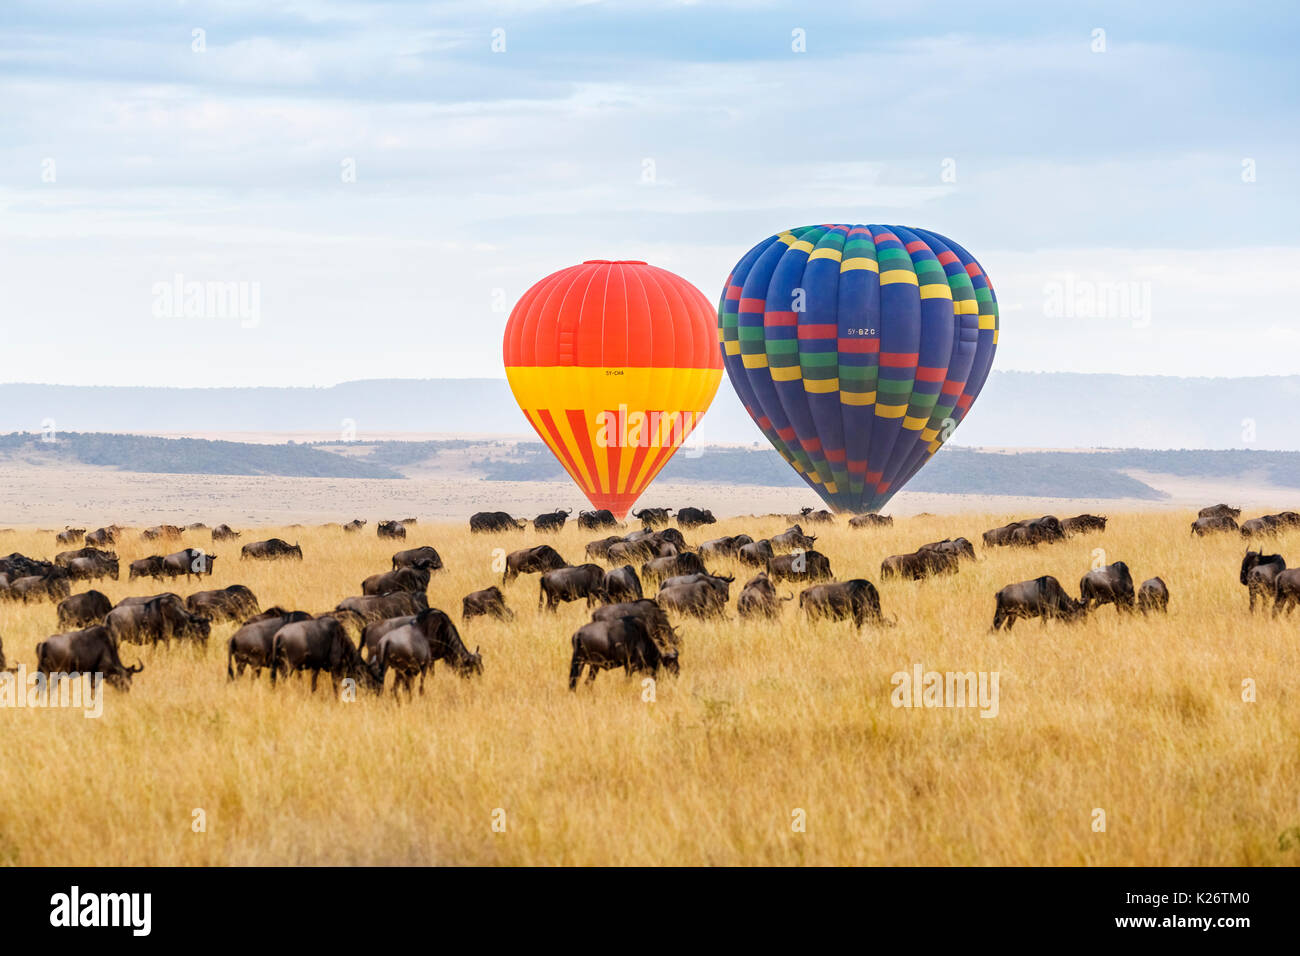 View of two hot air balloons rising over a herd of blue wildebeest (Connochaetes taurinus) in the savannah in the early morning, Masai Mara, Kenya - Stock Image